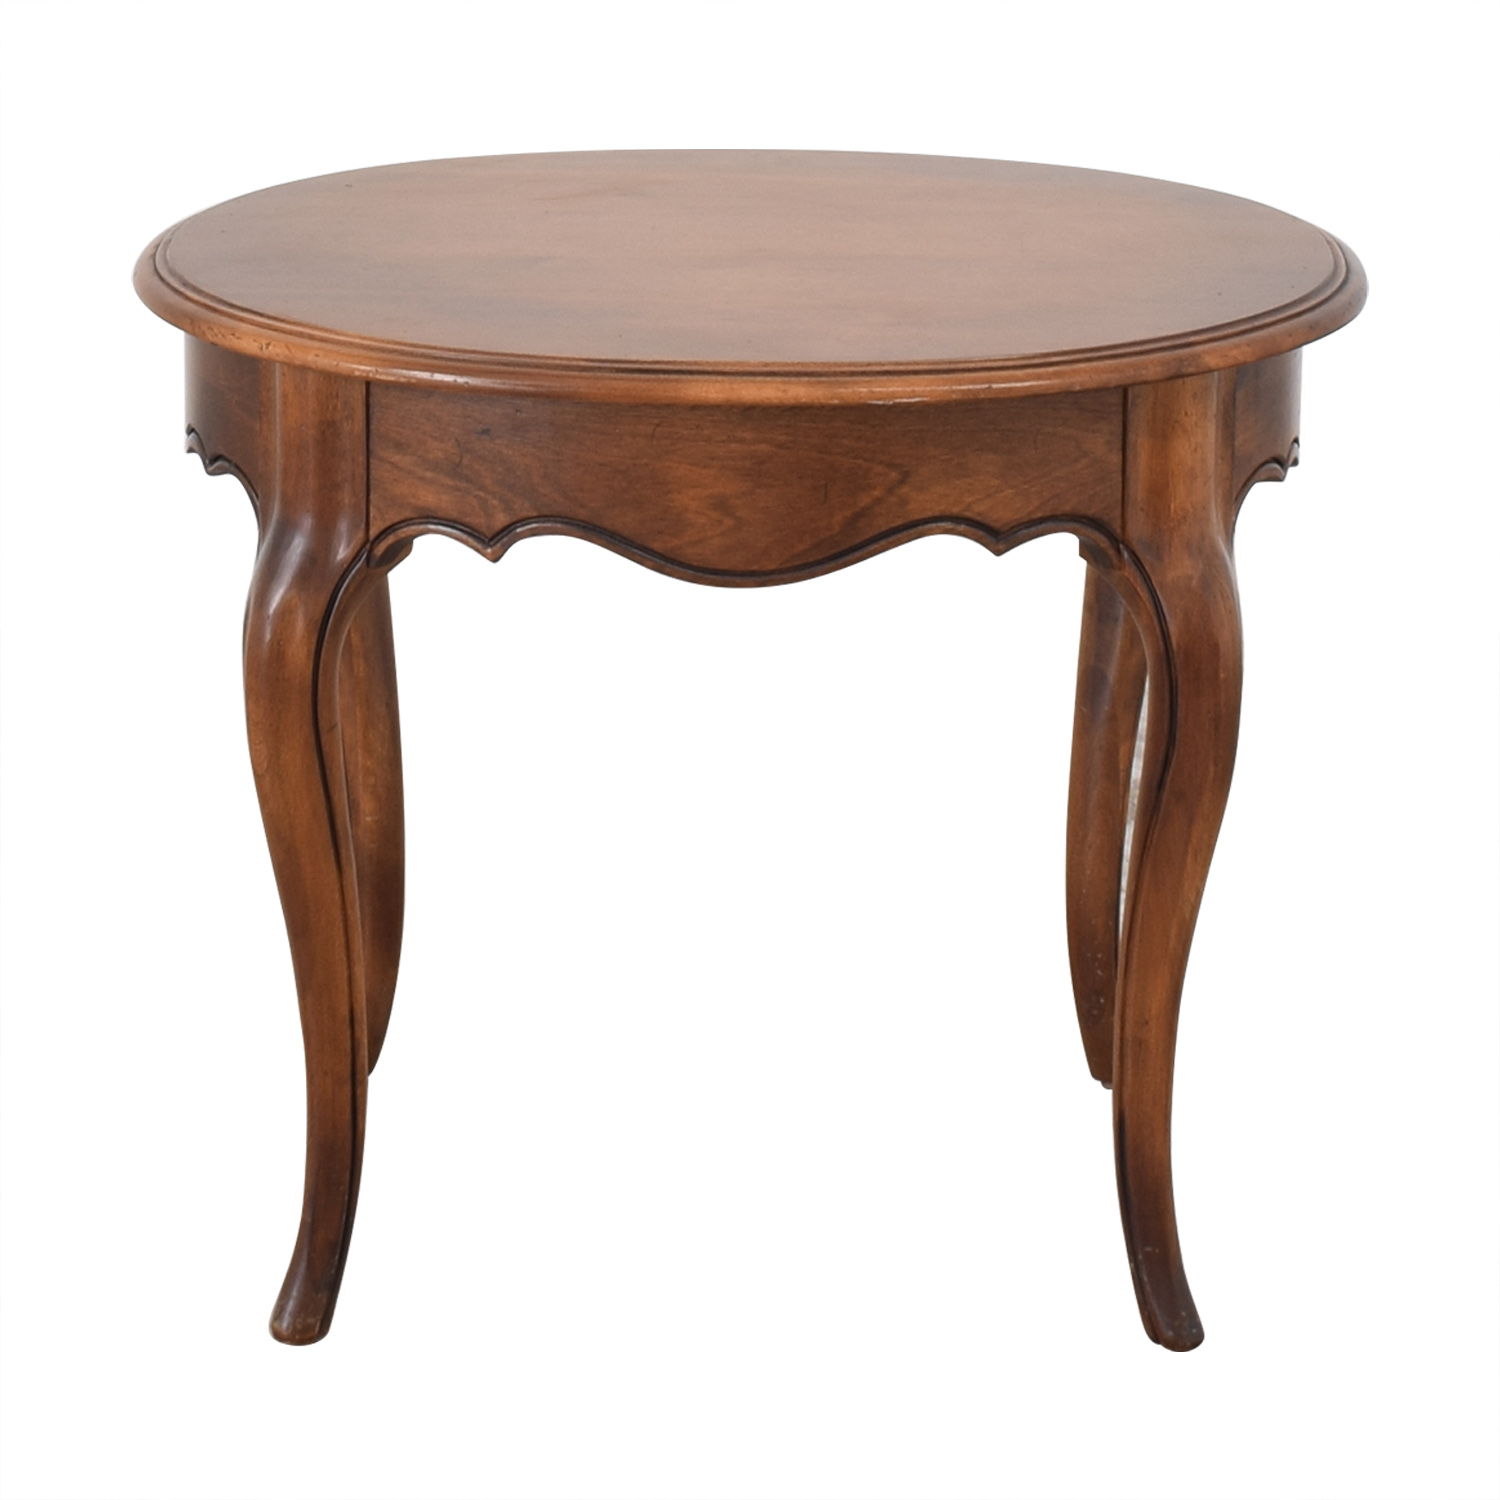 Ethan Allen Oval End Table / Tables